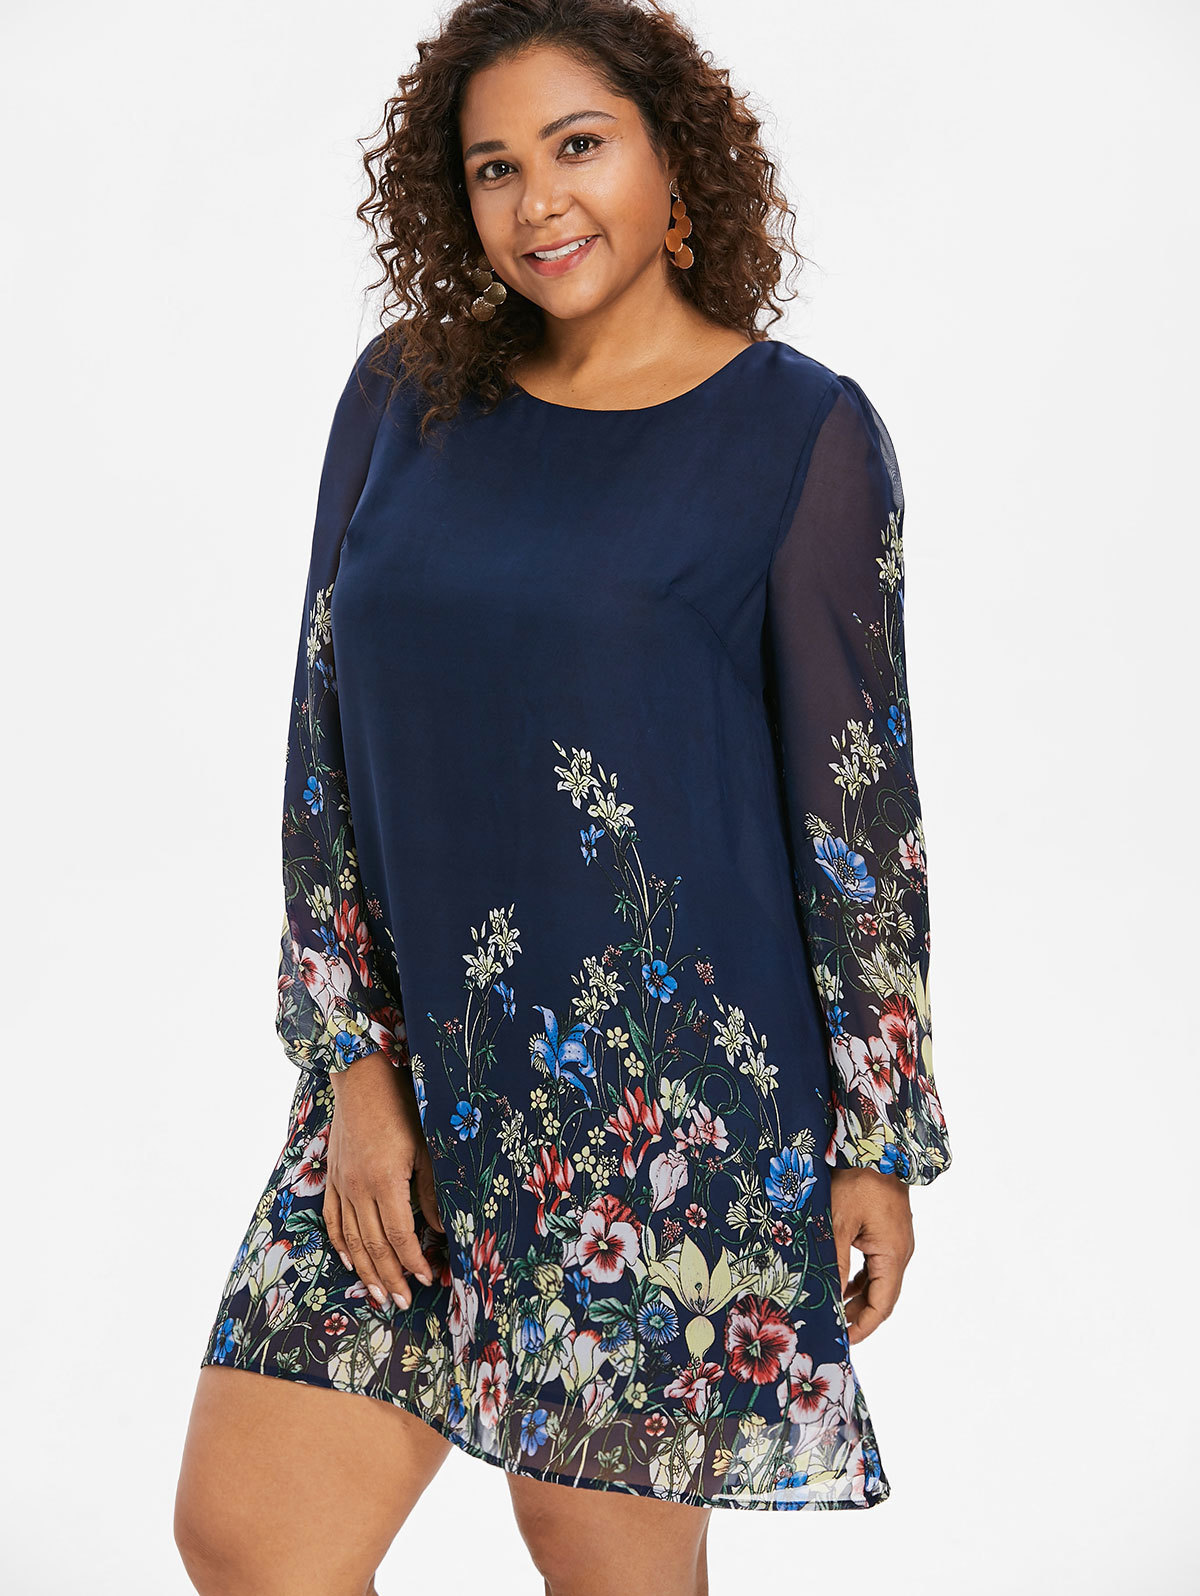 Wipalo Navy Blue Plus Size Floral Embroidery Tunic Dress Spring Summer Elegant Large Sizes Tribal Flower Print Vocation Dress Y190426